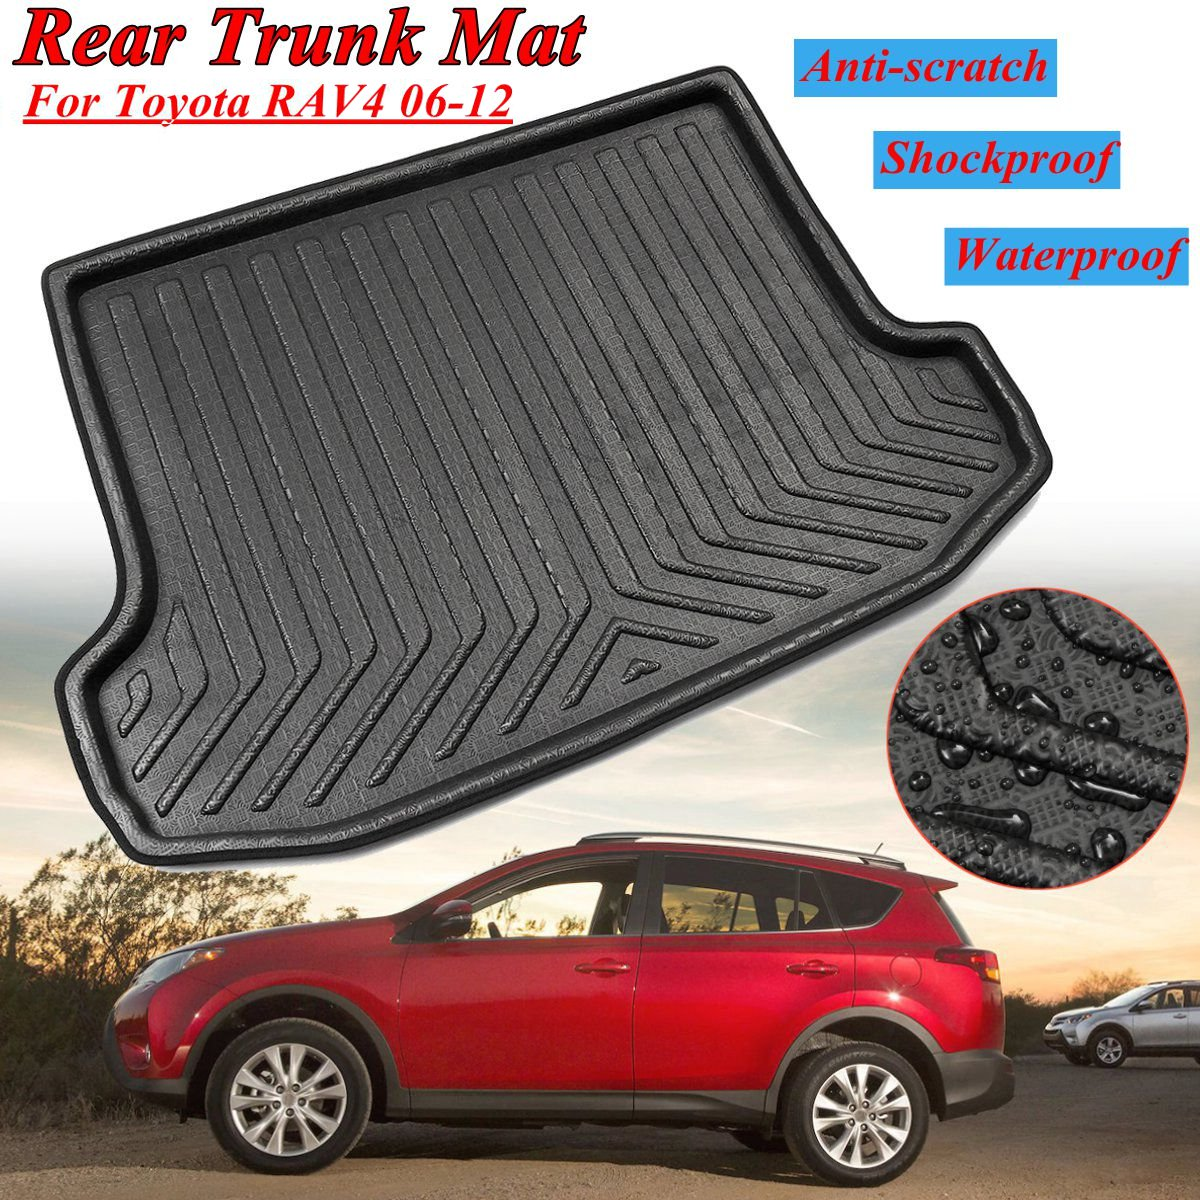 for Toyota RAV4 2006 2007 2008 2009 2010 2011 2012 High Quality Floor Mats Rear Trunk Cargo Mat Floor Tray Boot Liner Waterproof auto floor mats for honda cr v crv 2007 2011 foot carpets step mat high quality brand new embroidery leather mats